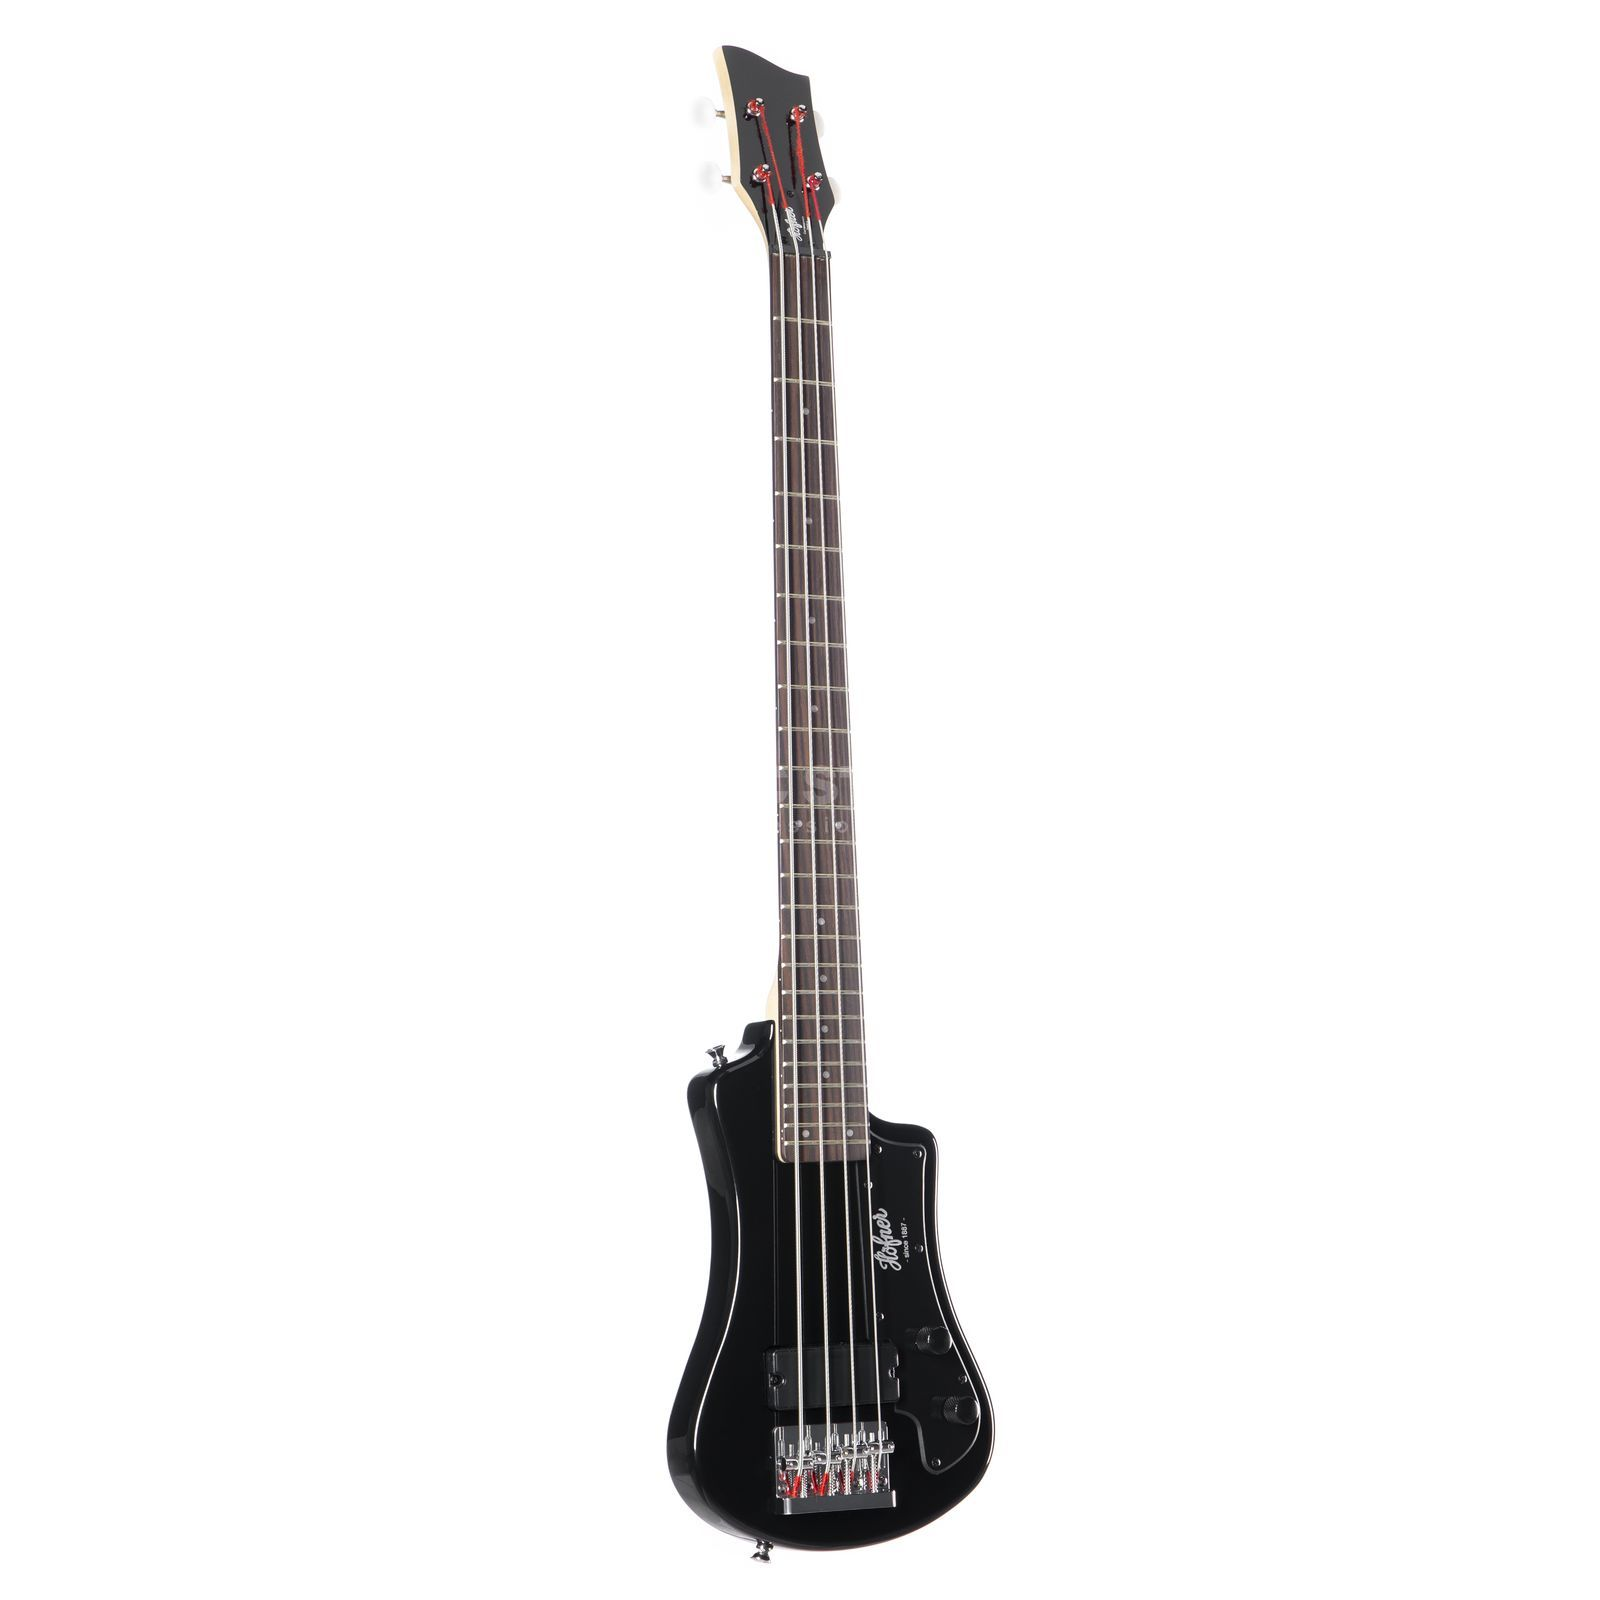 Höfner Shorty Bass CT Black HCT-SHB-BK-0 Produktbillede